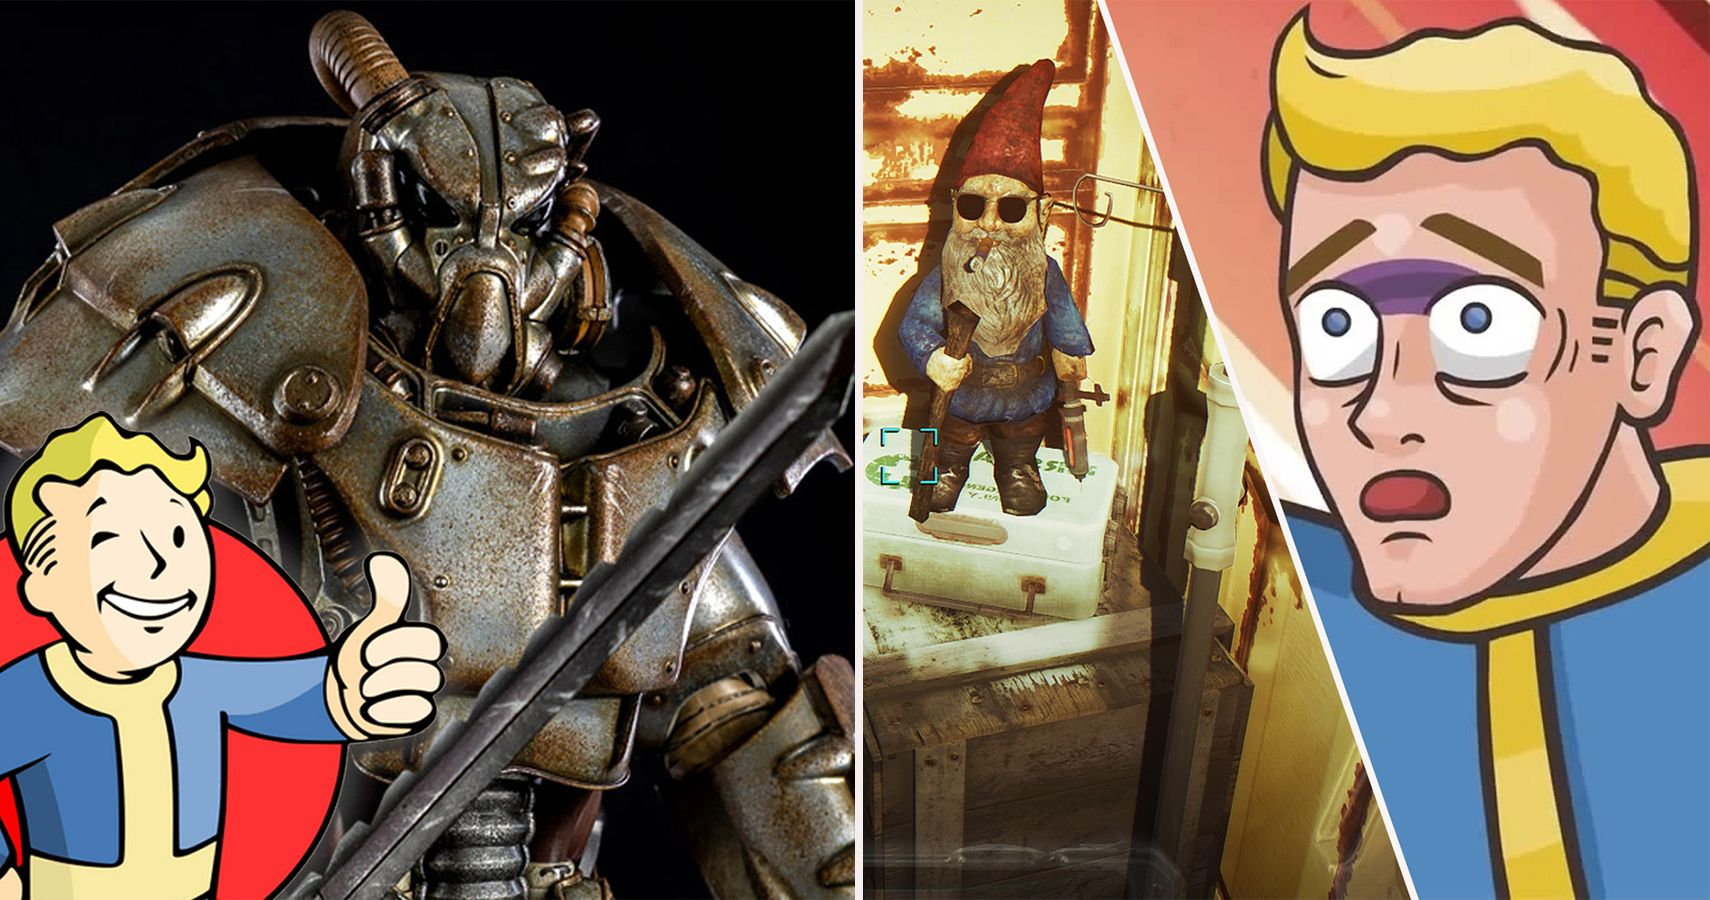 30 Little Known Details About Fallout 4 That Are Very Mysterious